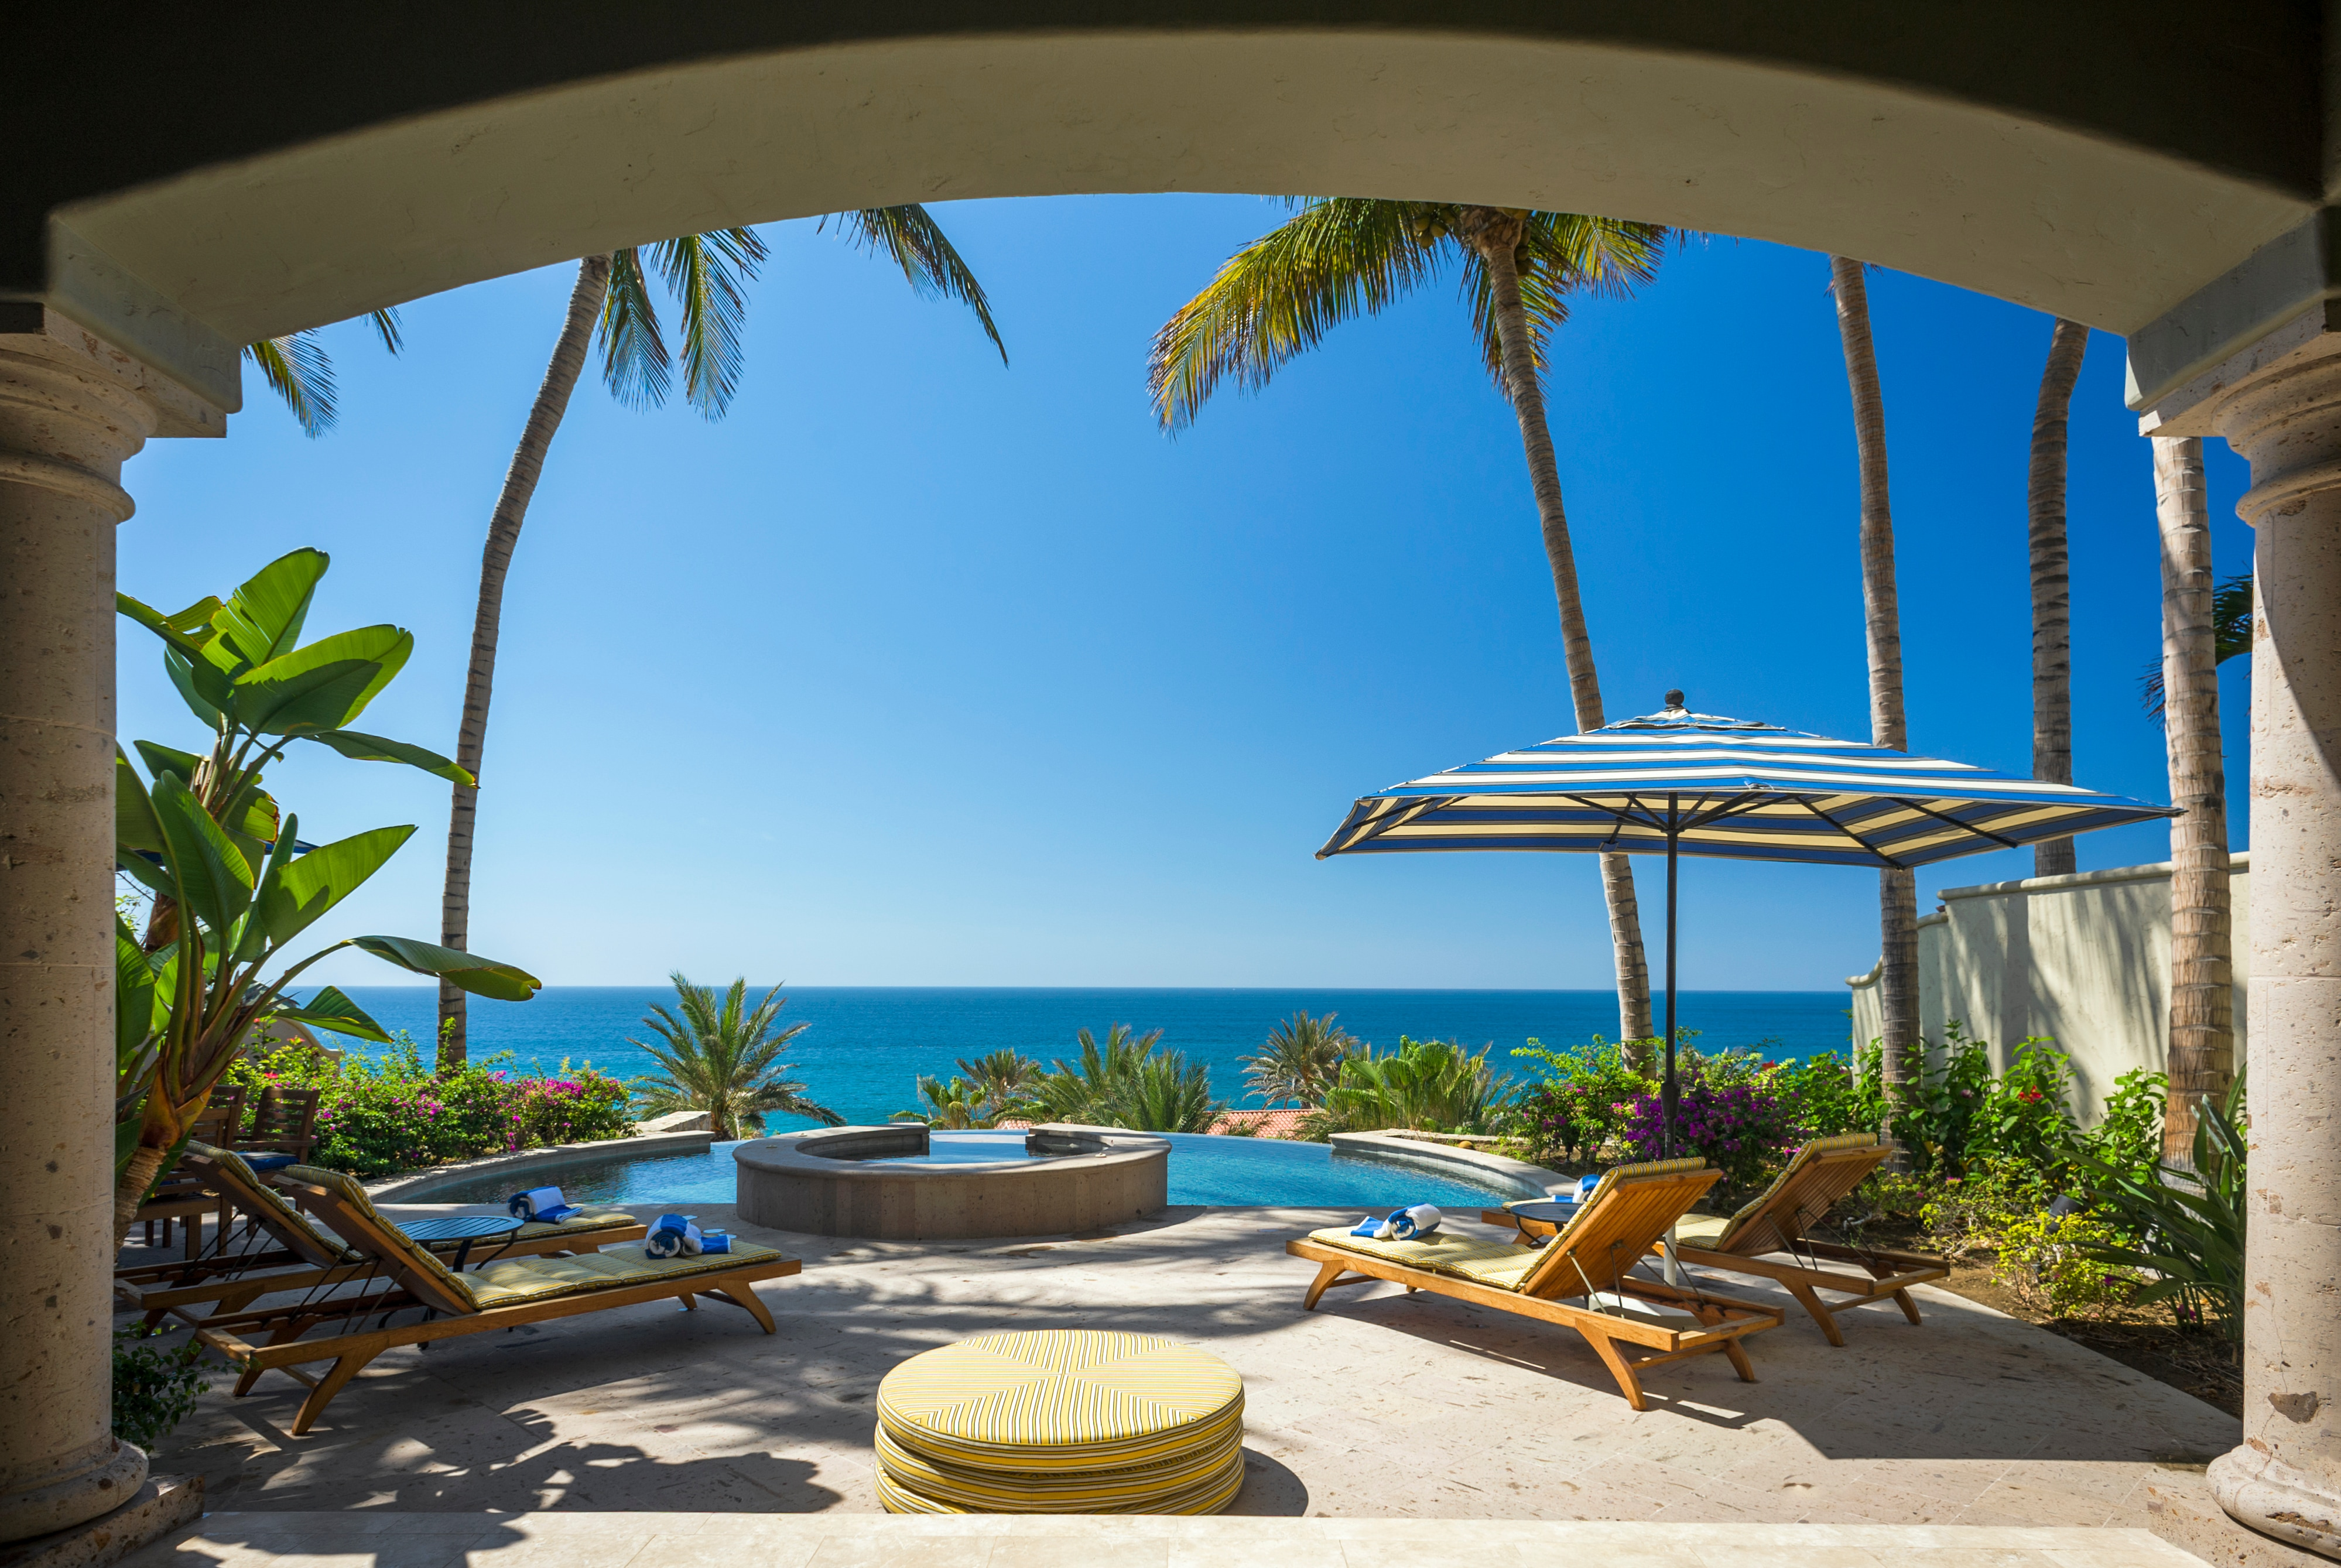 Property Image 2 - Striking Villa with Sweeping Ocean Vistas from a Pristine Los Cabos Address